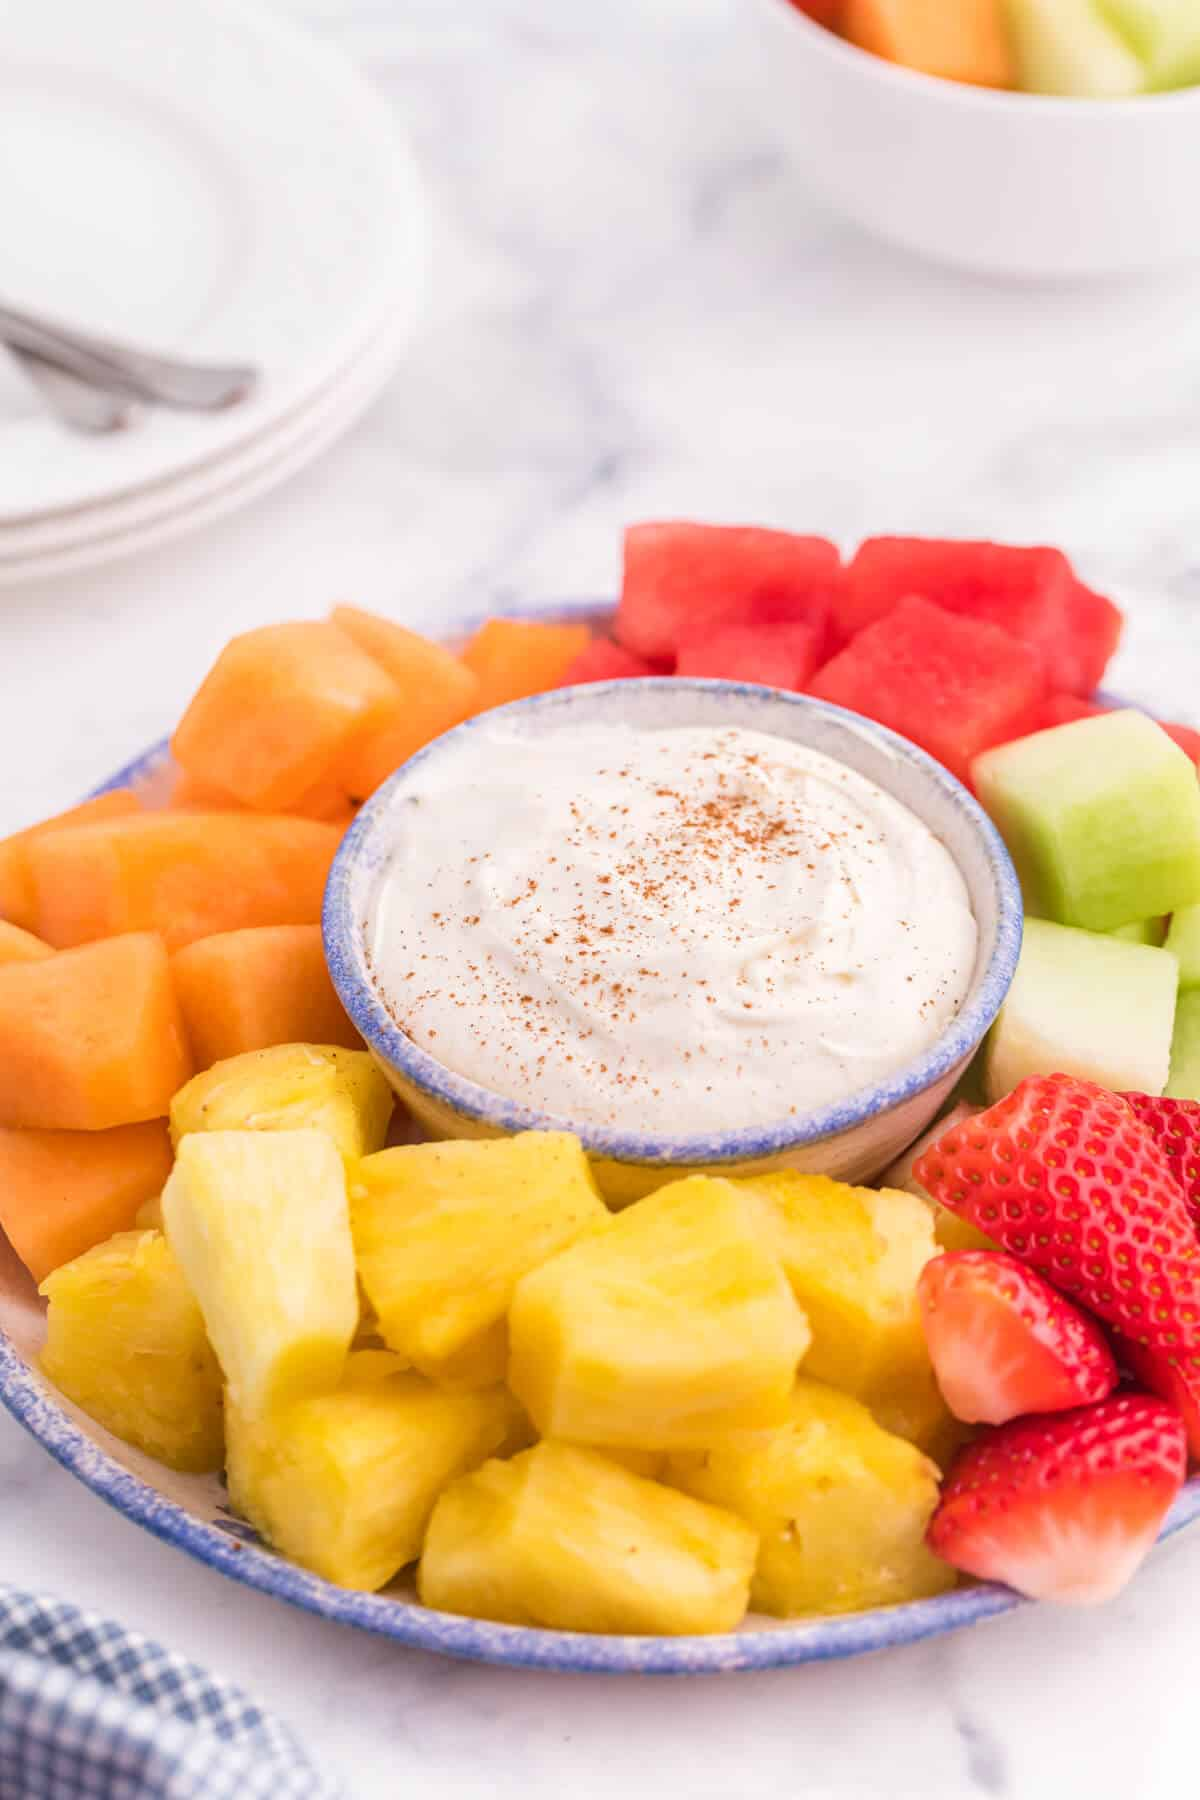 Cinnamon Cream Cheese Dip - Only four ingredients in this simple fruit dip. It's super easy to whip up and can be made the night before and kept in the fridge. Try with fruit, cookies or sweet crackers.